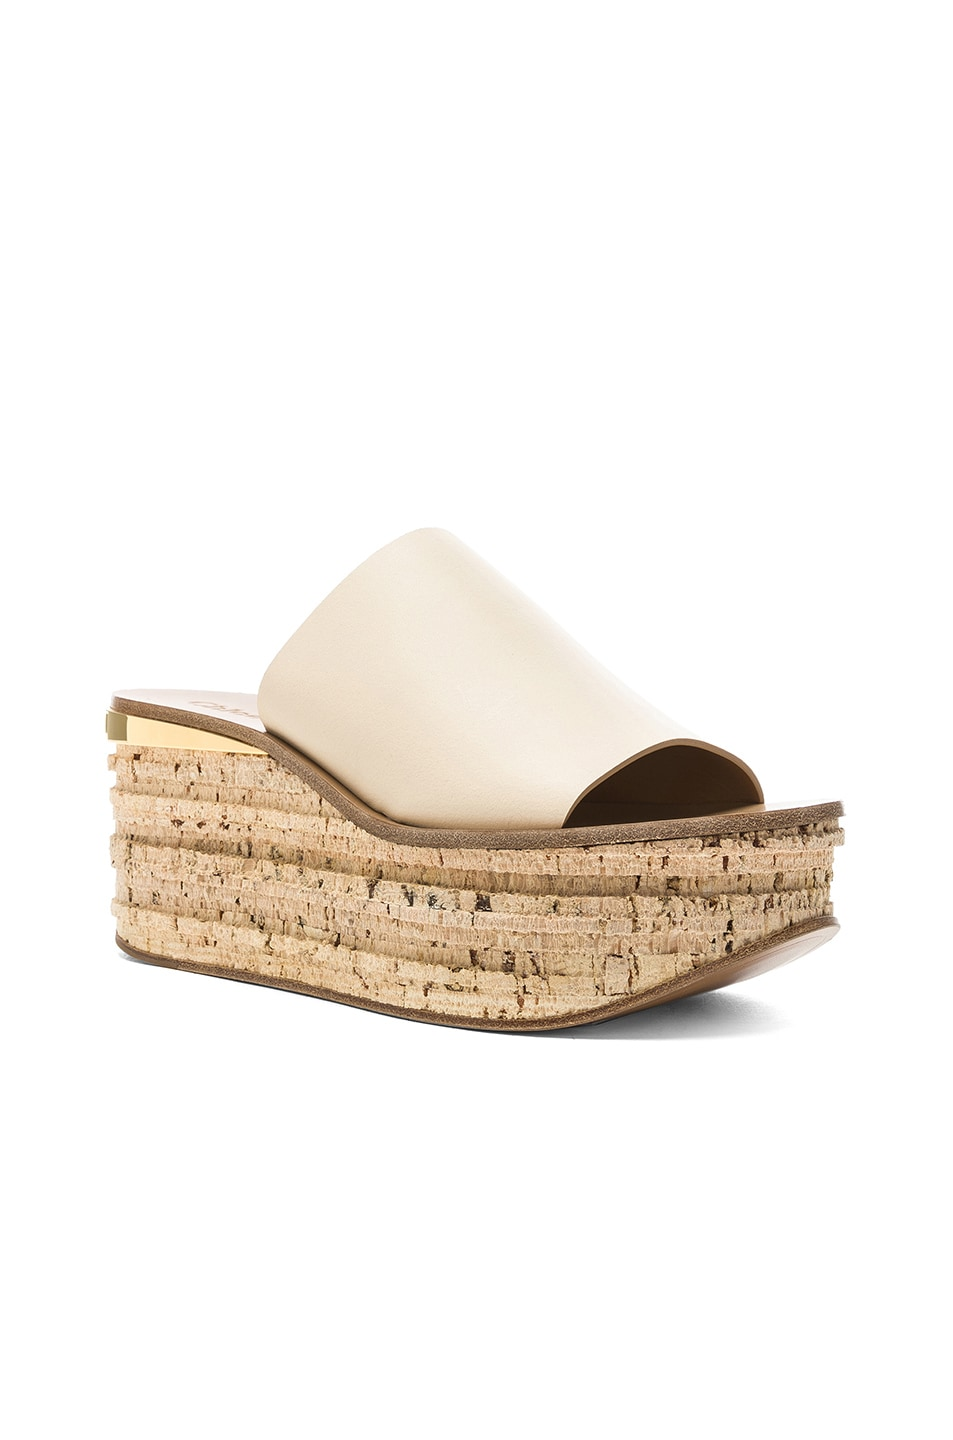 Image 2 of Chloe Platform Sandals in Mild Beige